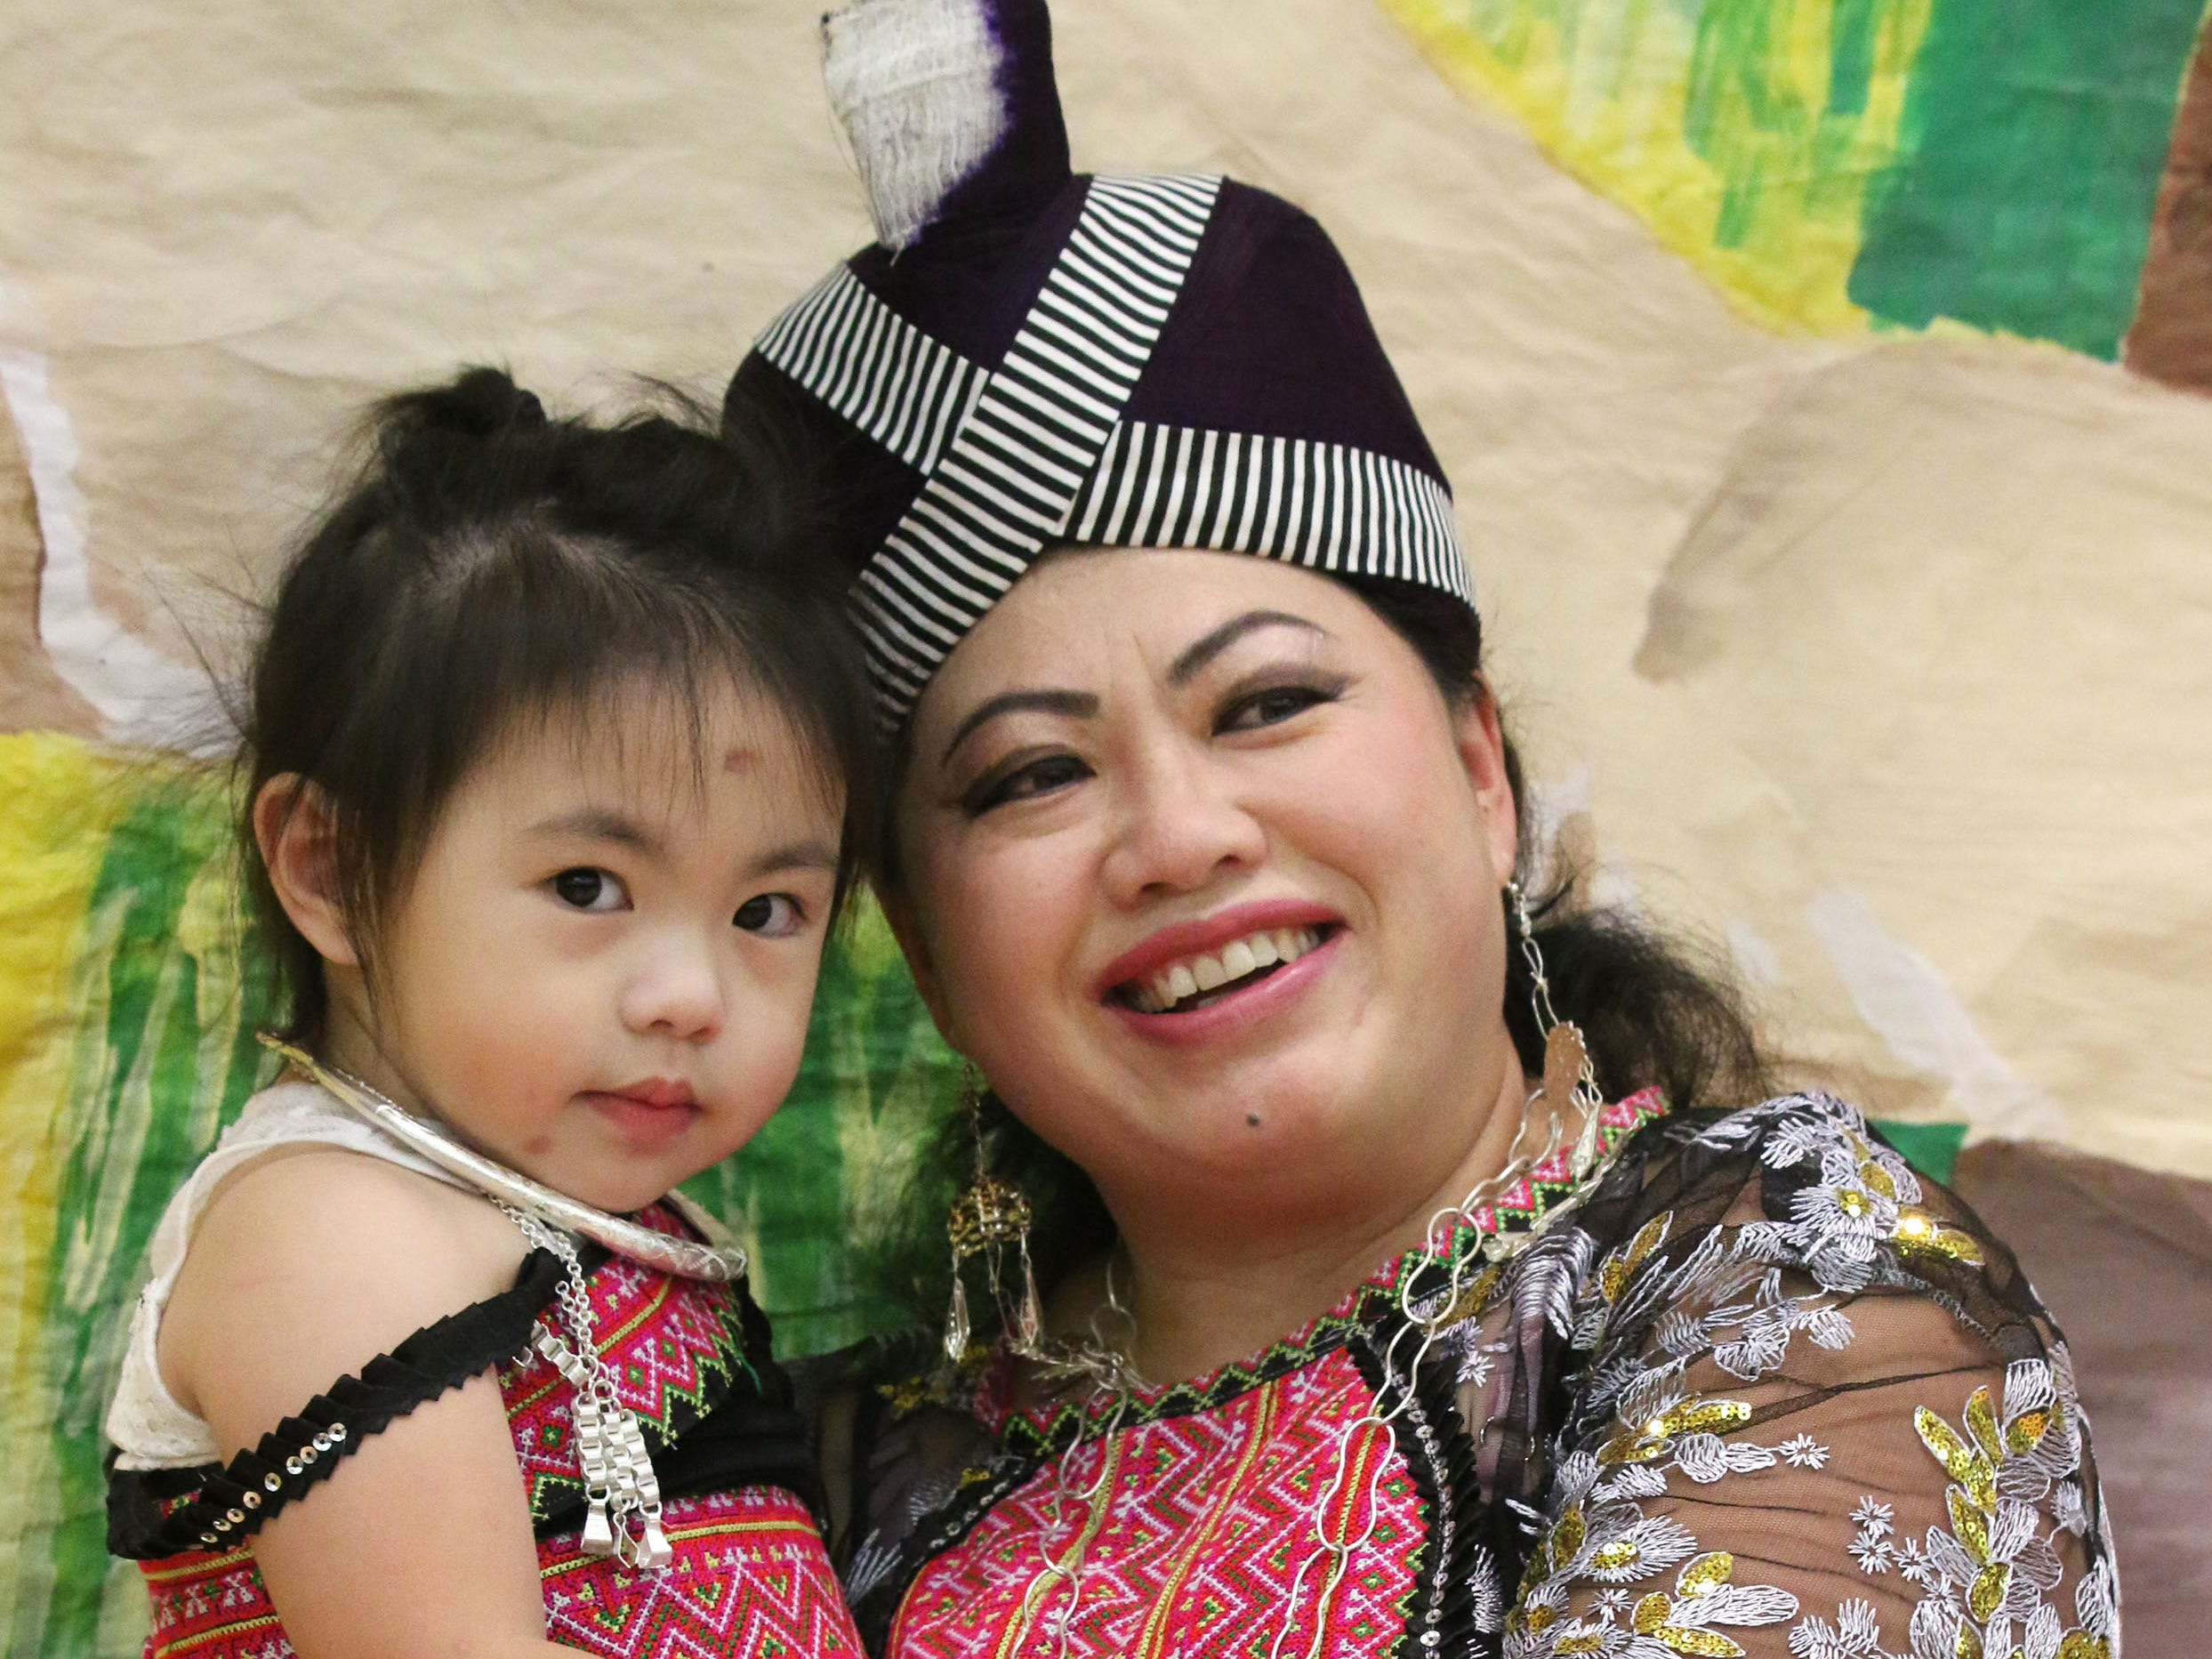 Hui Xianng of Sheboygan holds her daughter Angel Lee, 2, while posing at the Hmong New Year at Sheboygan North High School, Friday, November 23, 2018, in Sheboygan, Wis.